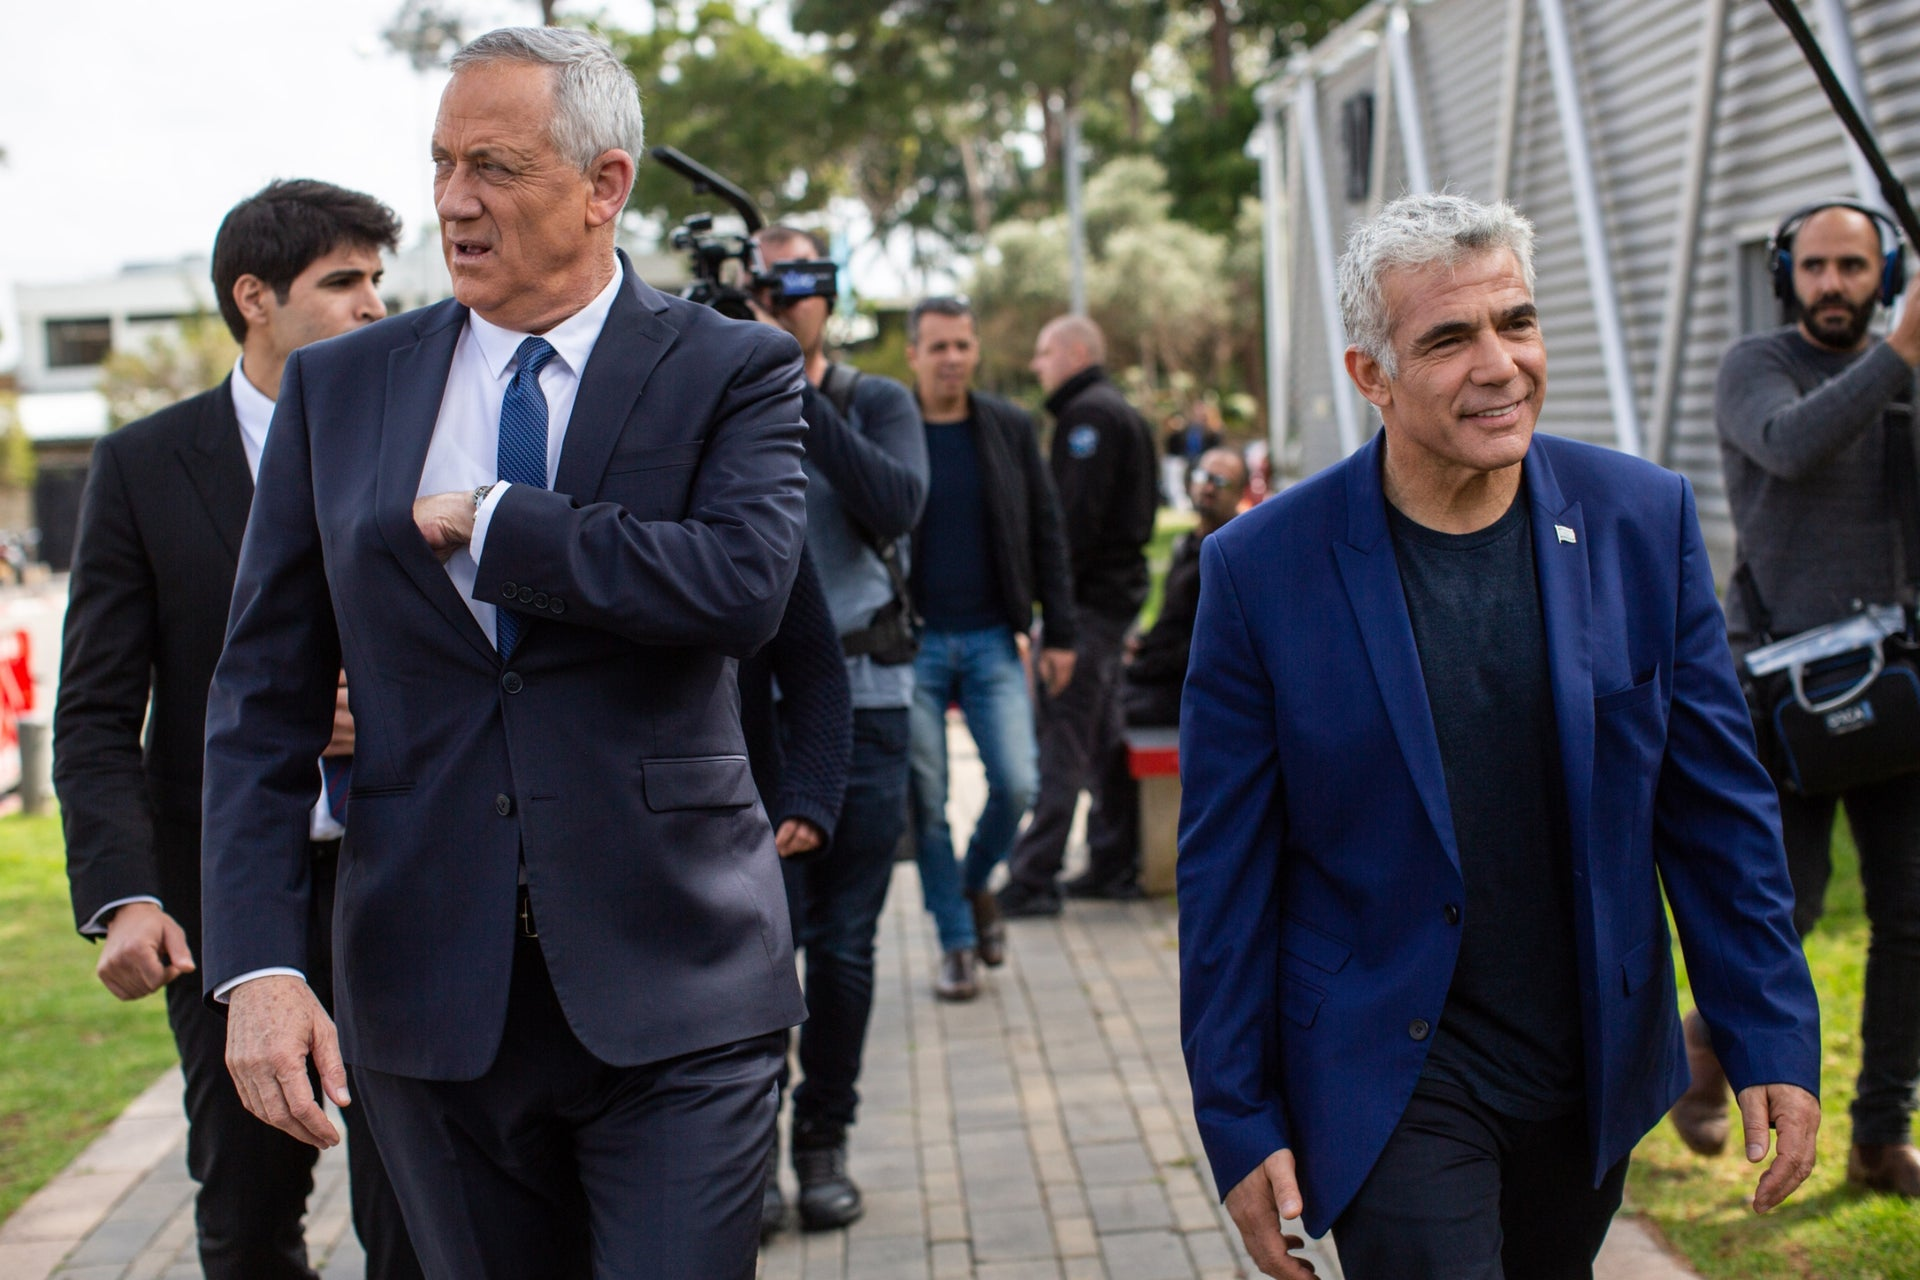 Kahol Lavan leaders Benny Gantz and Yair Lapid on the campaign trail in Tel Aviv, March 21, 2019.